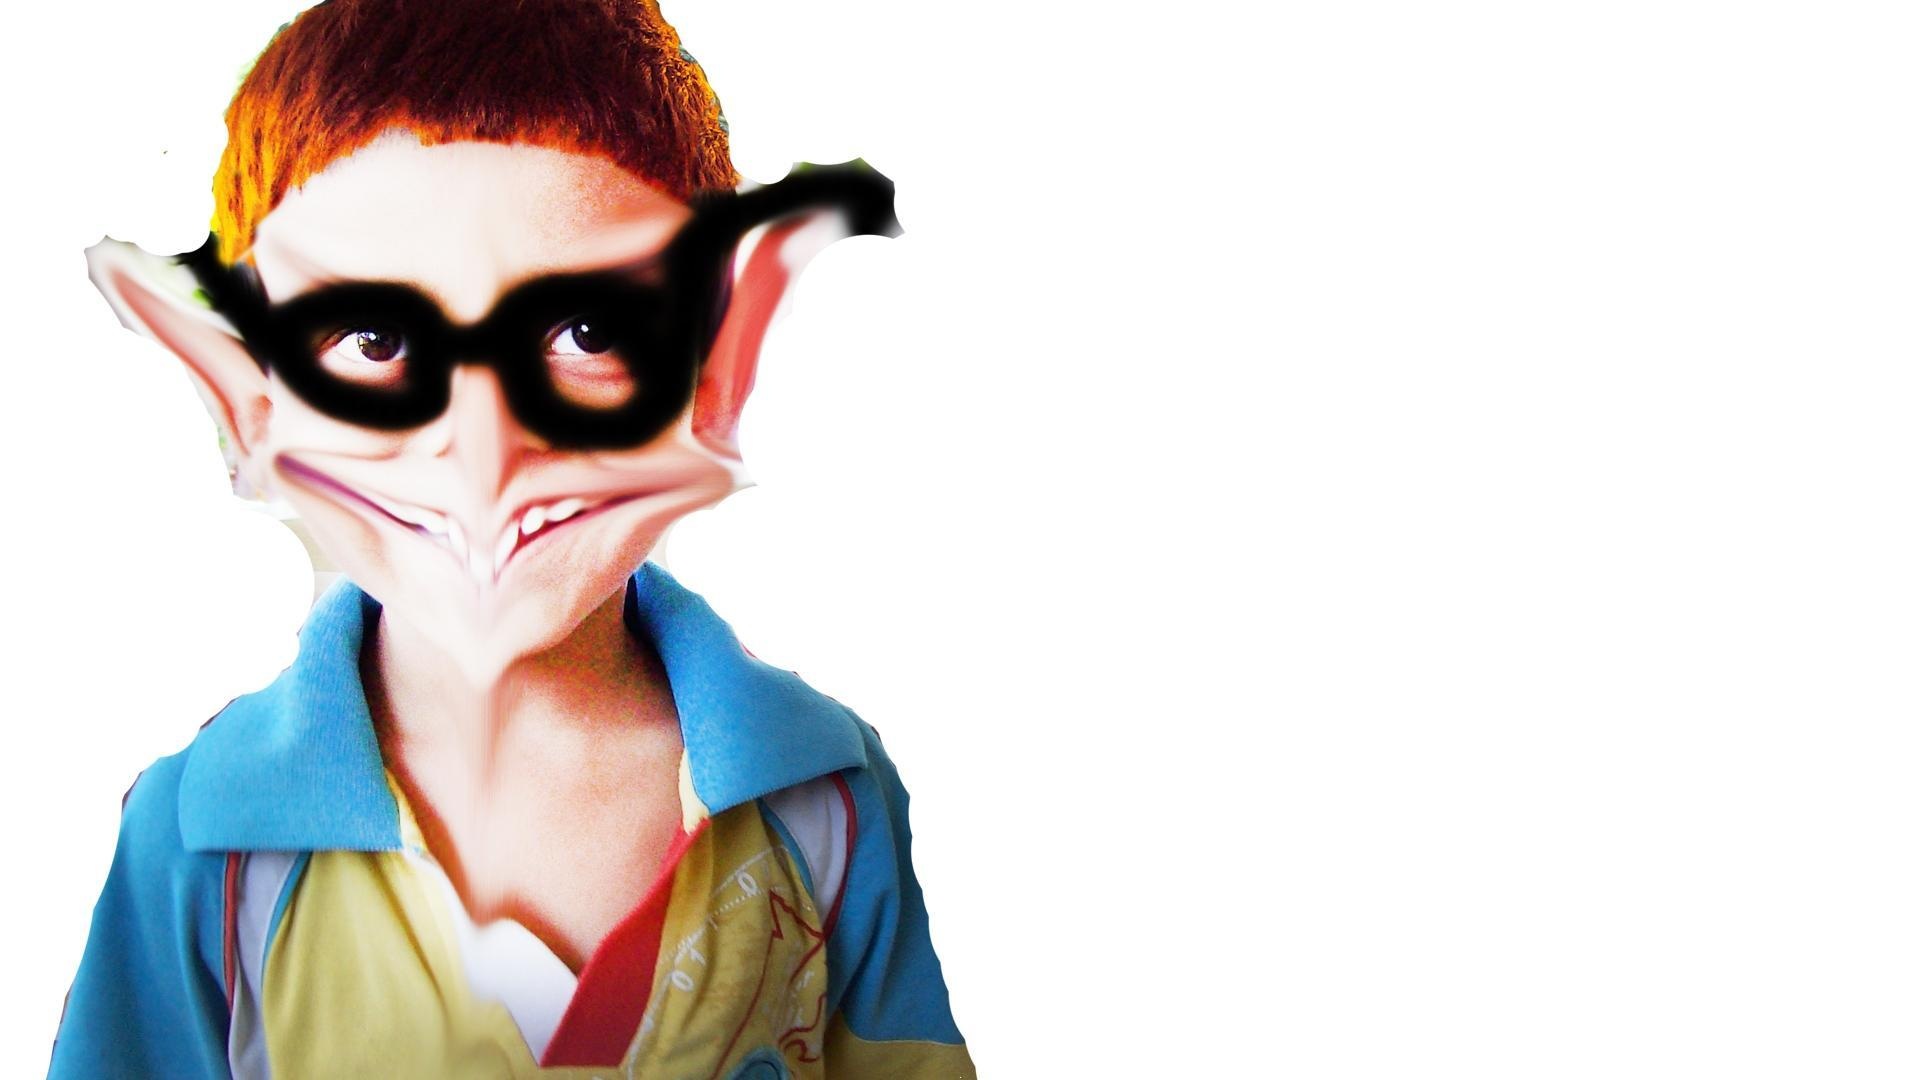 Download Ginger Kid Very Funny Wallpaper Funny Wallpapers